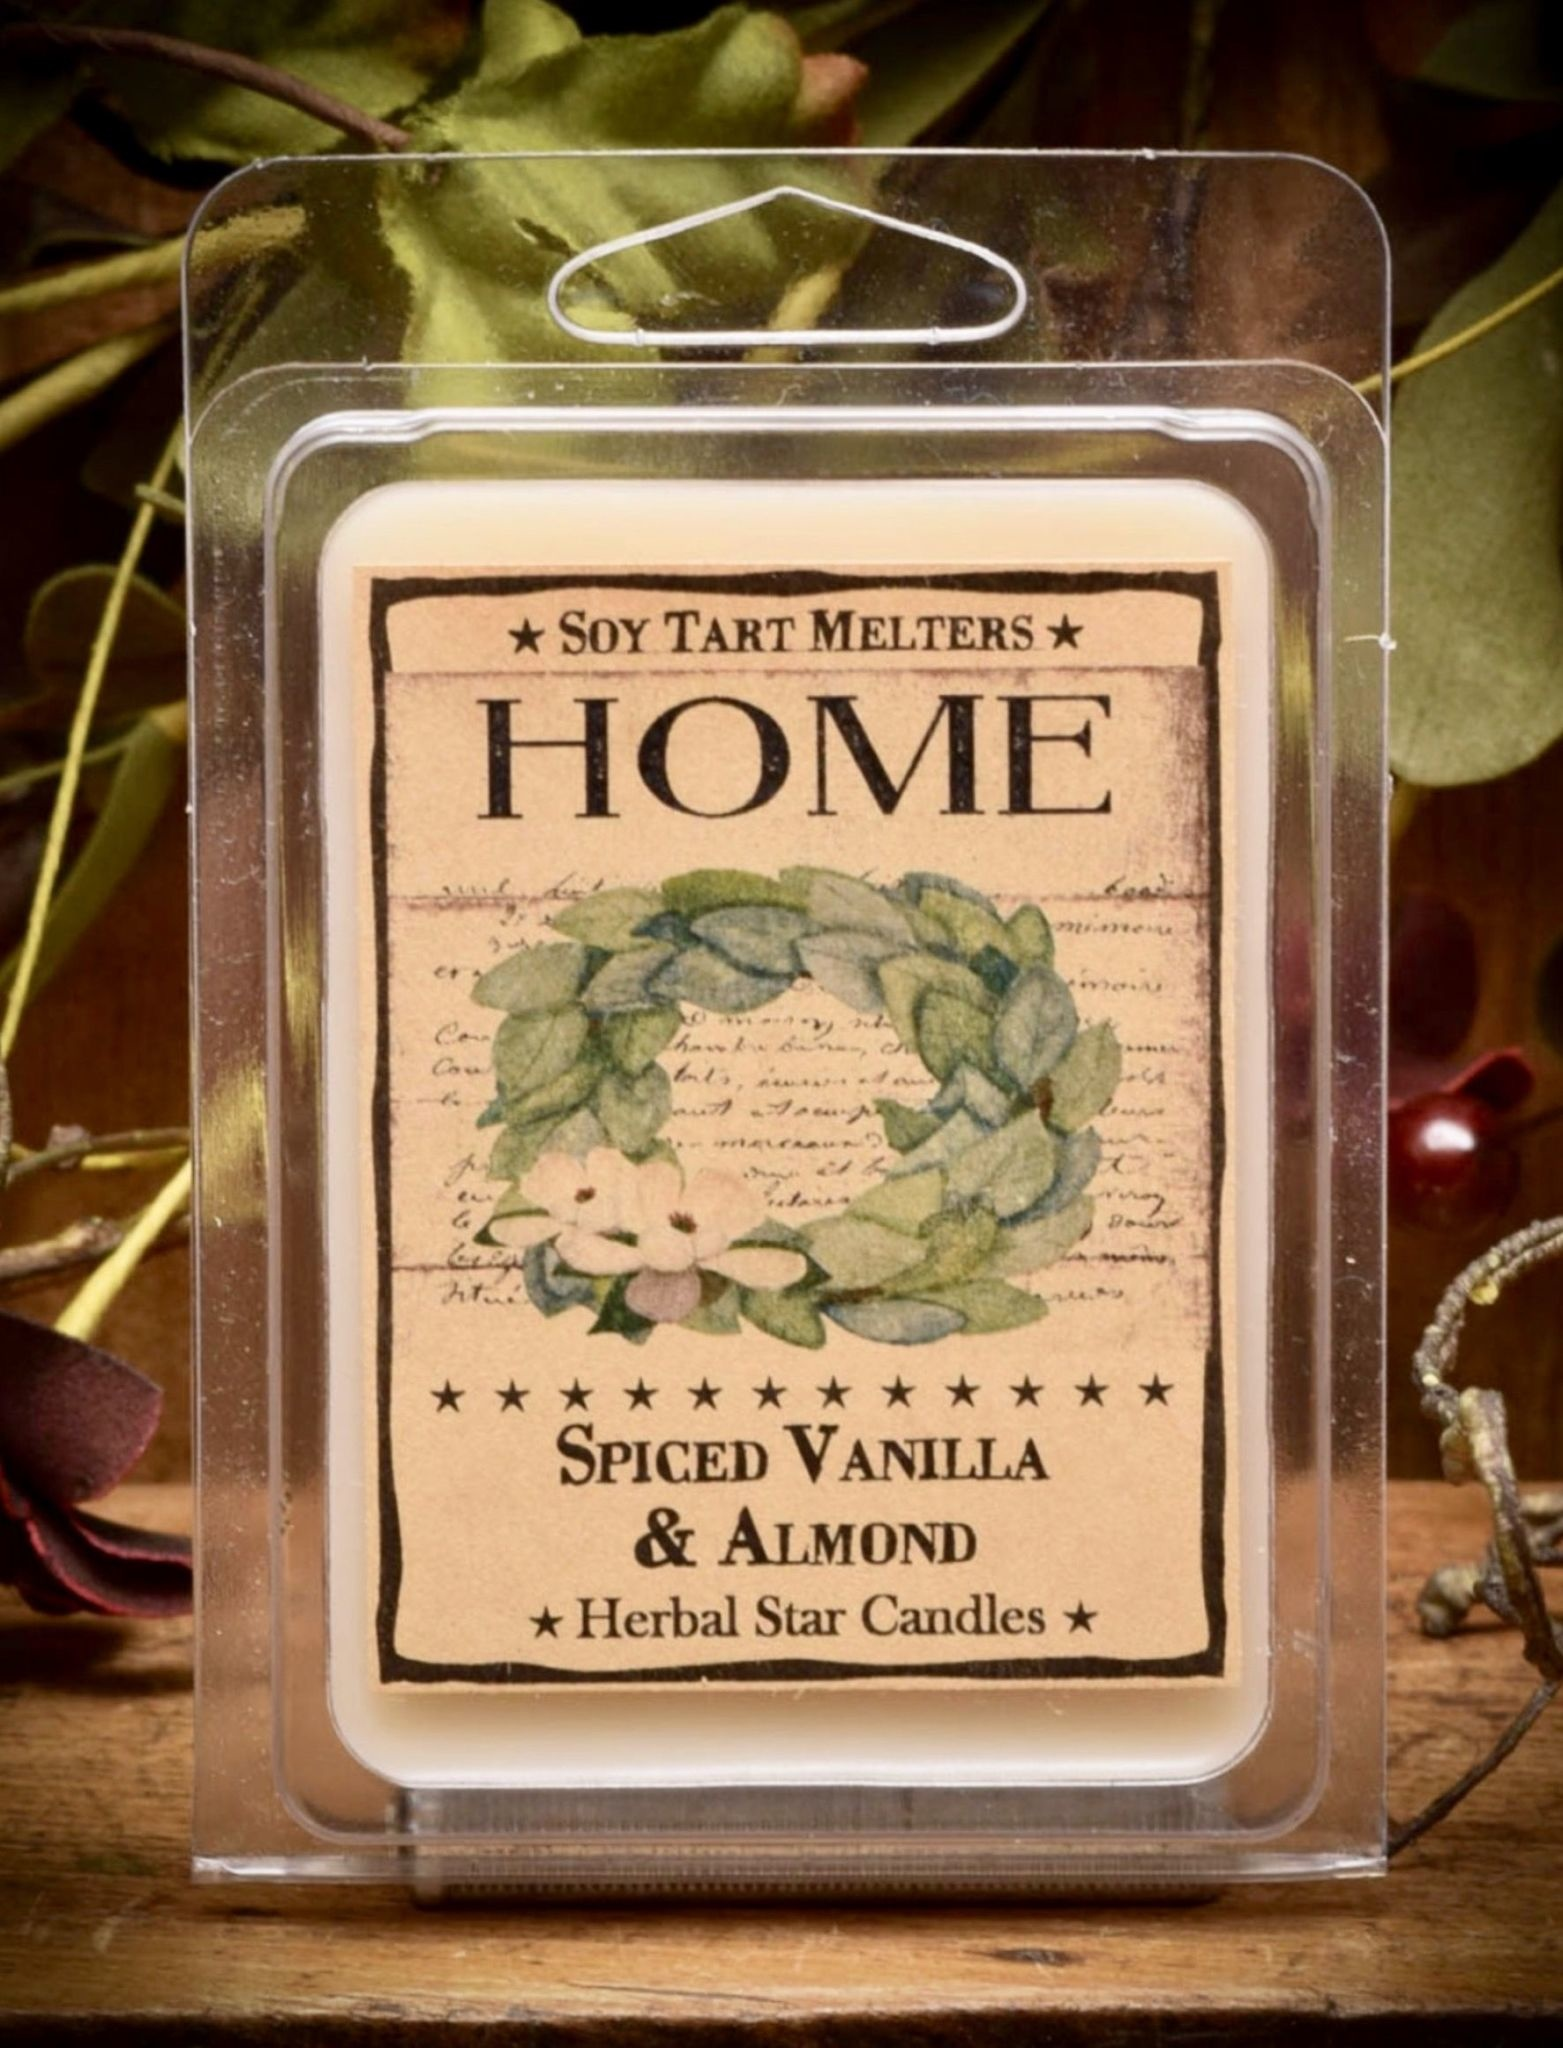 Herbal Star Candles Home Mini Pack of Tarts